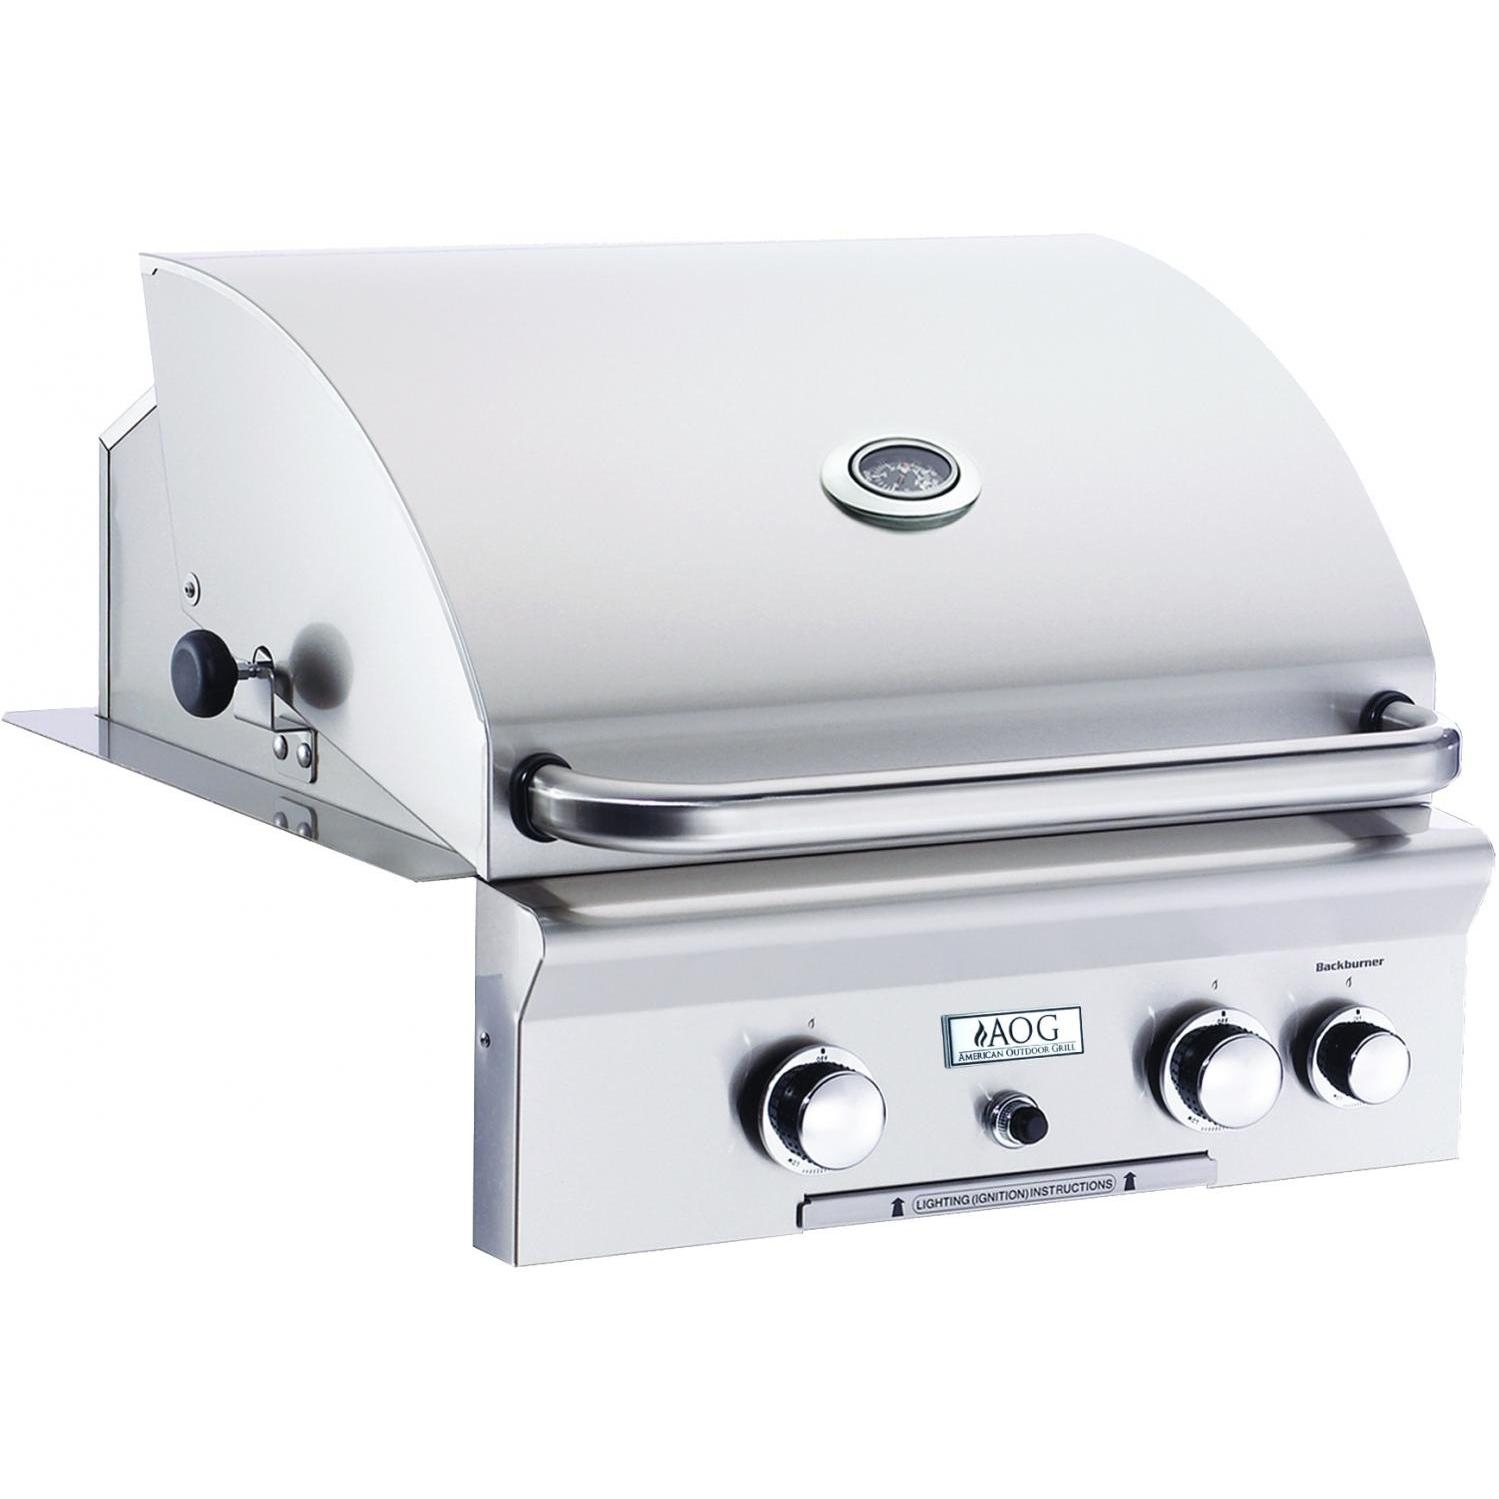 AOG American Outdoor Grill 24 Inch Built-in Propane Gas Grill W/ Rotisserie at Sears.com